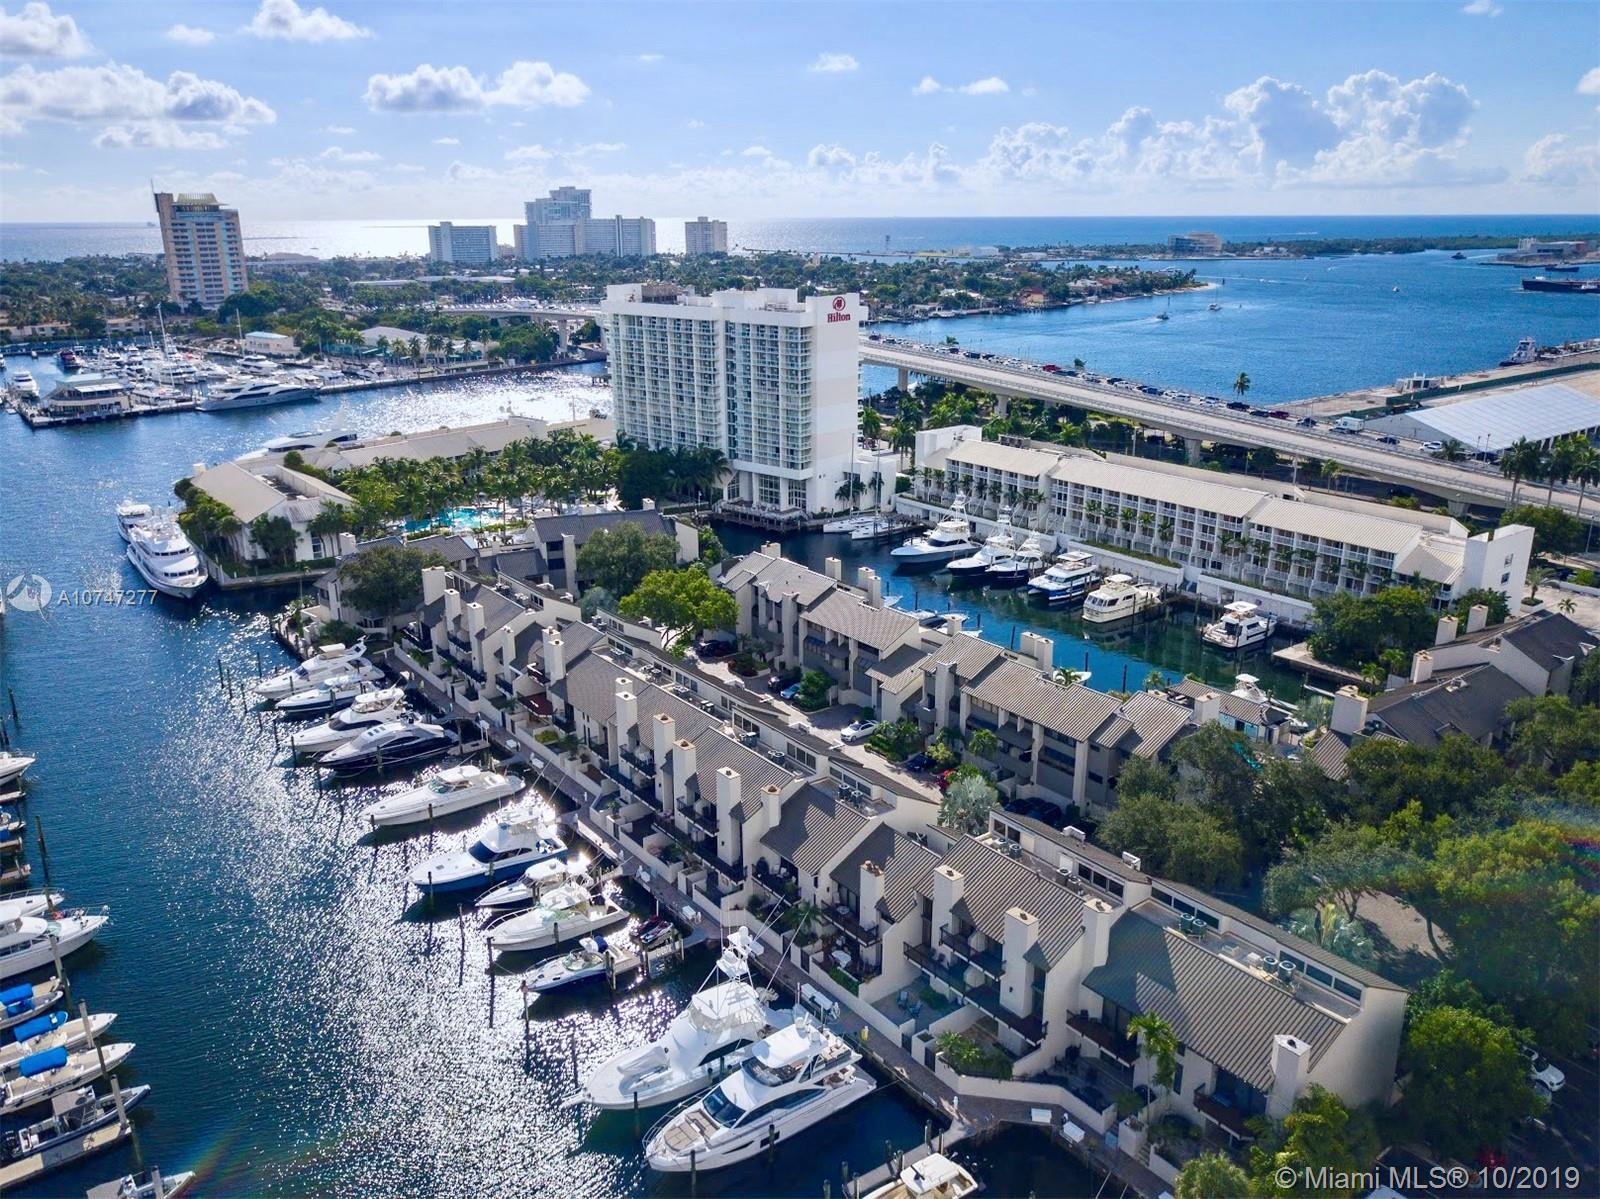 Fort Lauderdale's Best Kept Secret!  Portside Yacht Club is a 40-townhome boating community… just minutes to the ocean!  A True Boater's Paradise!  Deeded 55' boat slip right outside your door!  This stunning multi-level townhome is a 2 BR / 2.5 Bath + loft,  2,226 sq ft residence with vaulted ceilings and oversized windows allowing much natural light into the expansive spaces.  Modern kitchen includes Gaggenau and  Miele appliances and SubZero refrigerator, additionally includes a built-in Espresso maker, steamer and grill.   Beautiful finishes and wood craftsmanship throughout.  Private elevator, several  balconies and one of the largest waterside patios in Portside.  Heated Pool and Cabana Bar area.  Close to Airport, Beaches and Port Everglades Inlet.  And pet friendly!